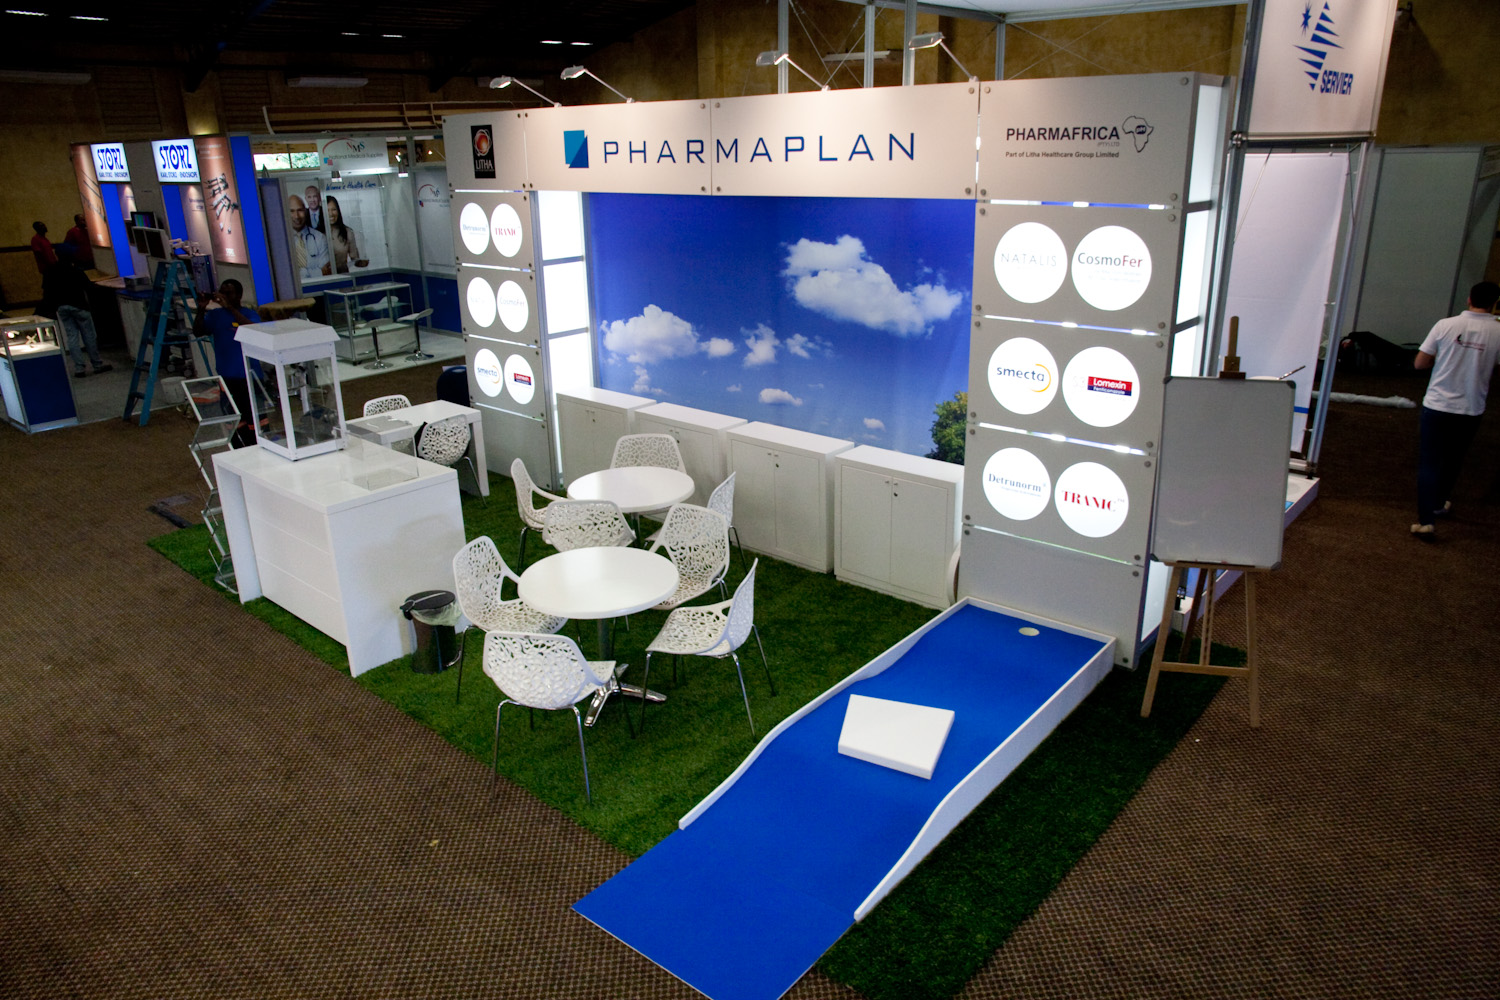 Exhibition Stand Builders South Africa : Pharmaplan litha sasog octanorm modular exhibit